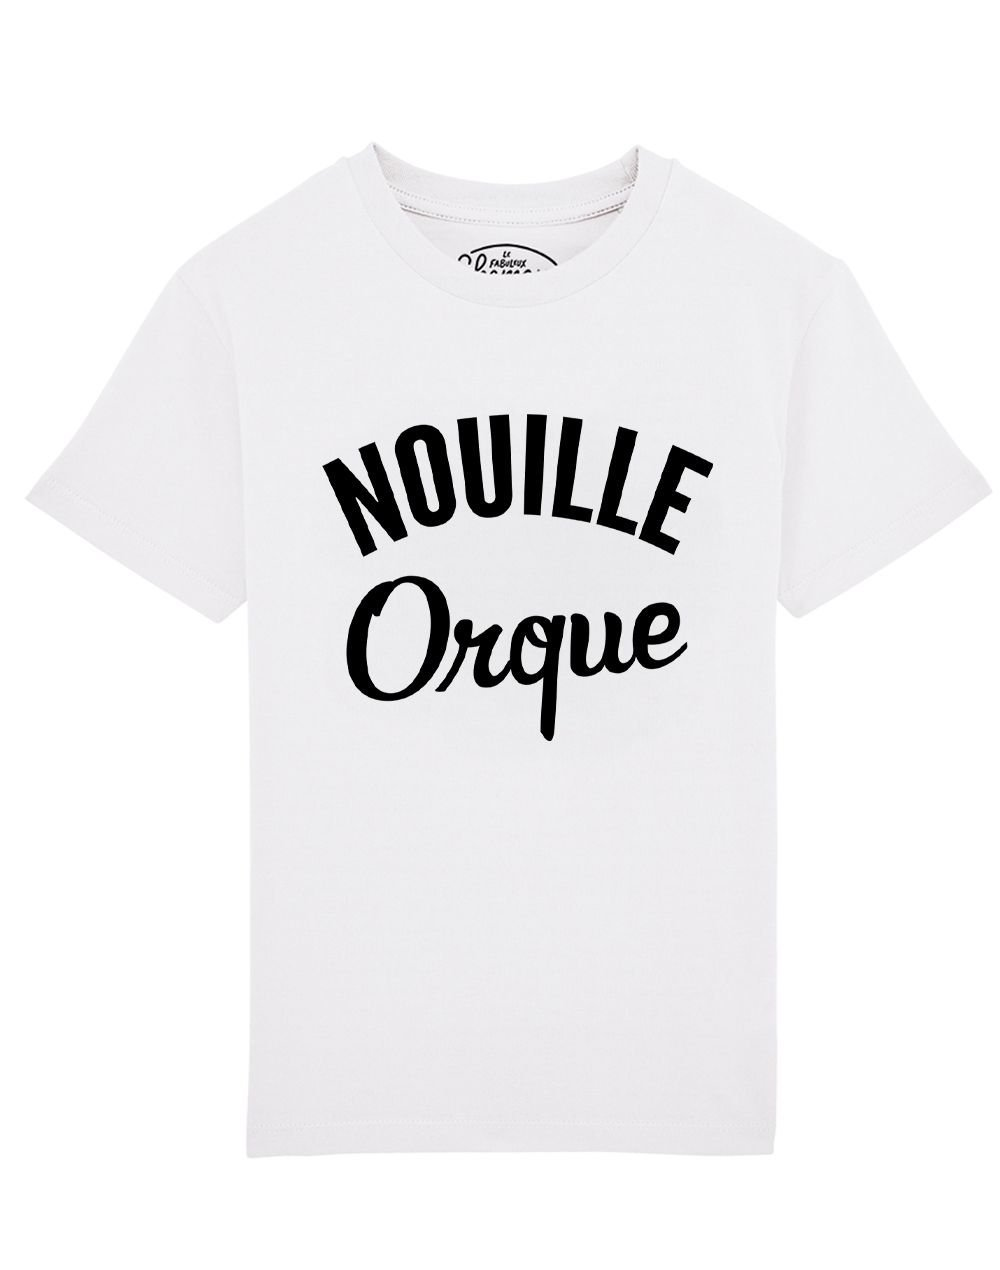 Tee shirt Nouille Orque